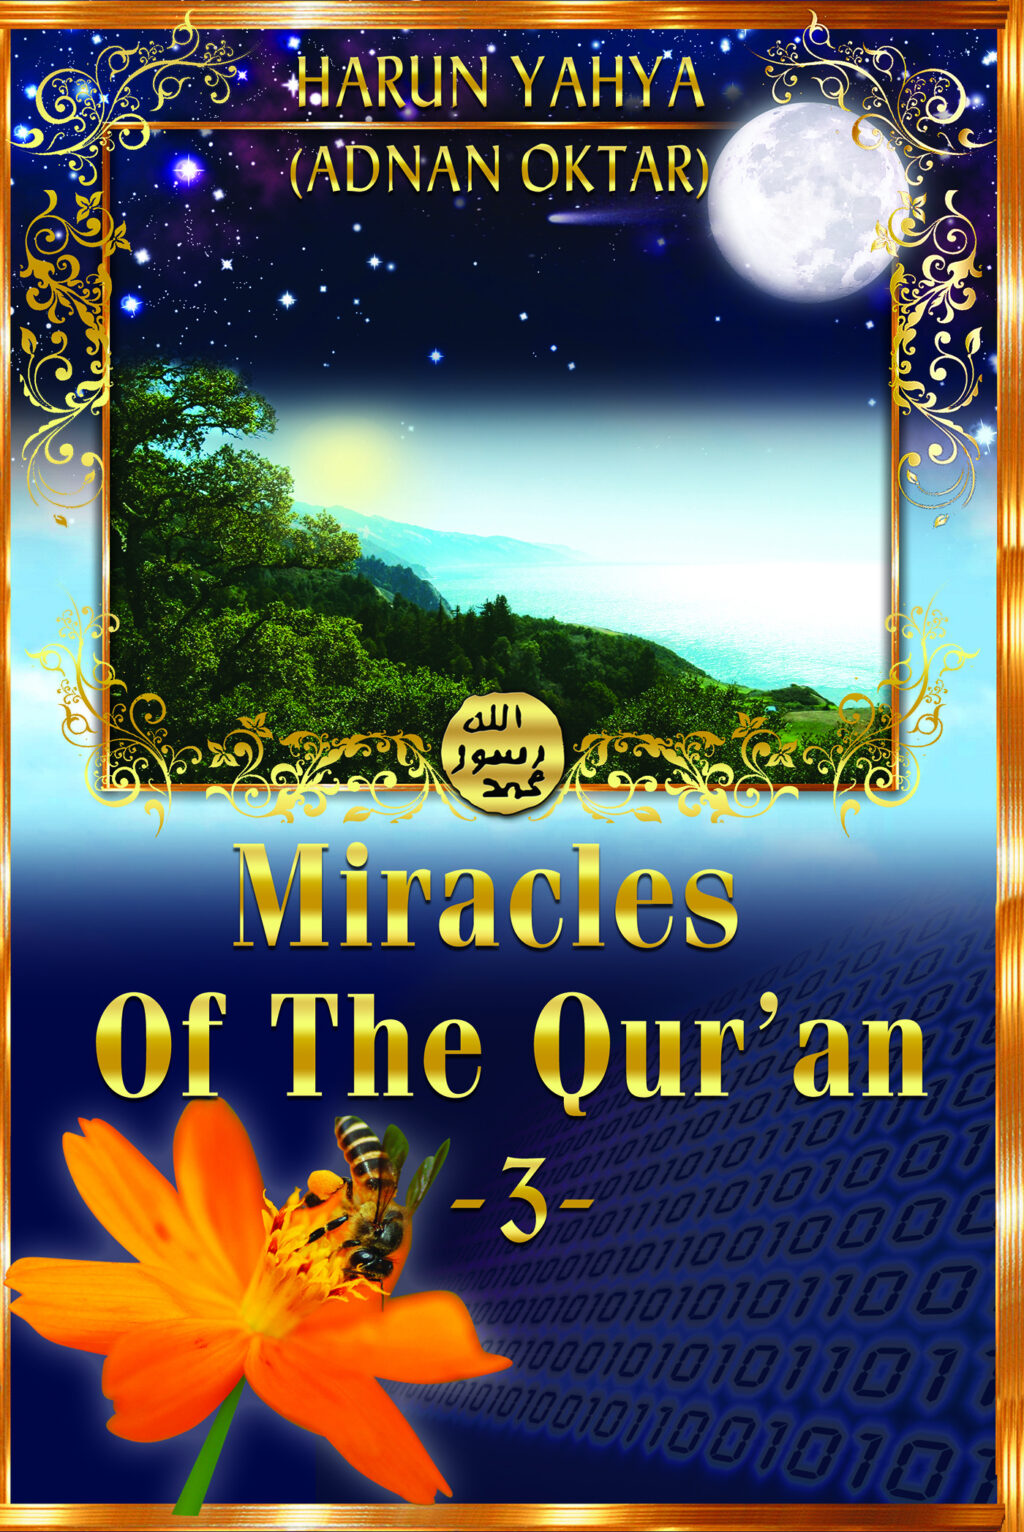 """the Quran miracles""  Perfection of the sky  (2/3)"